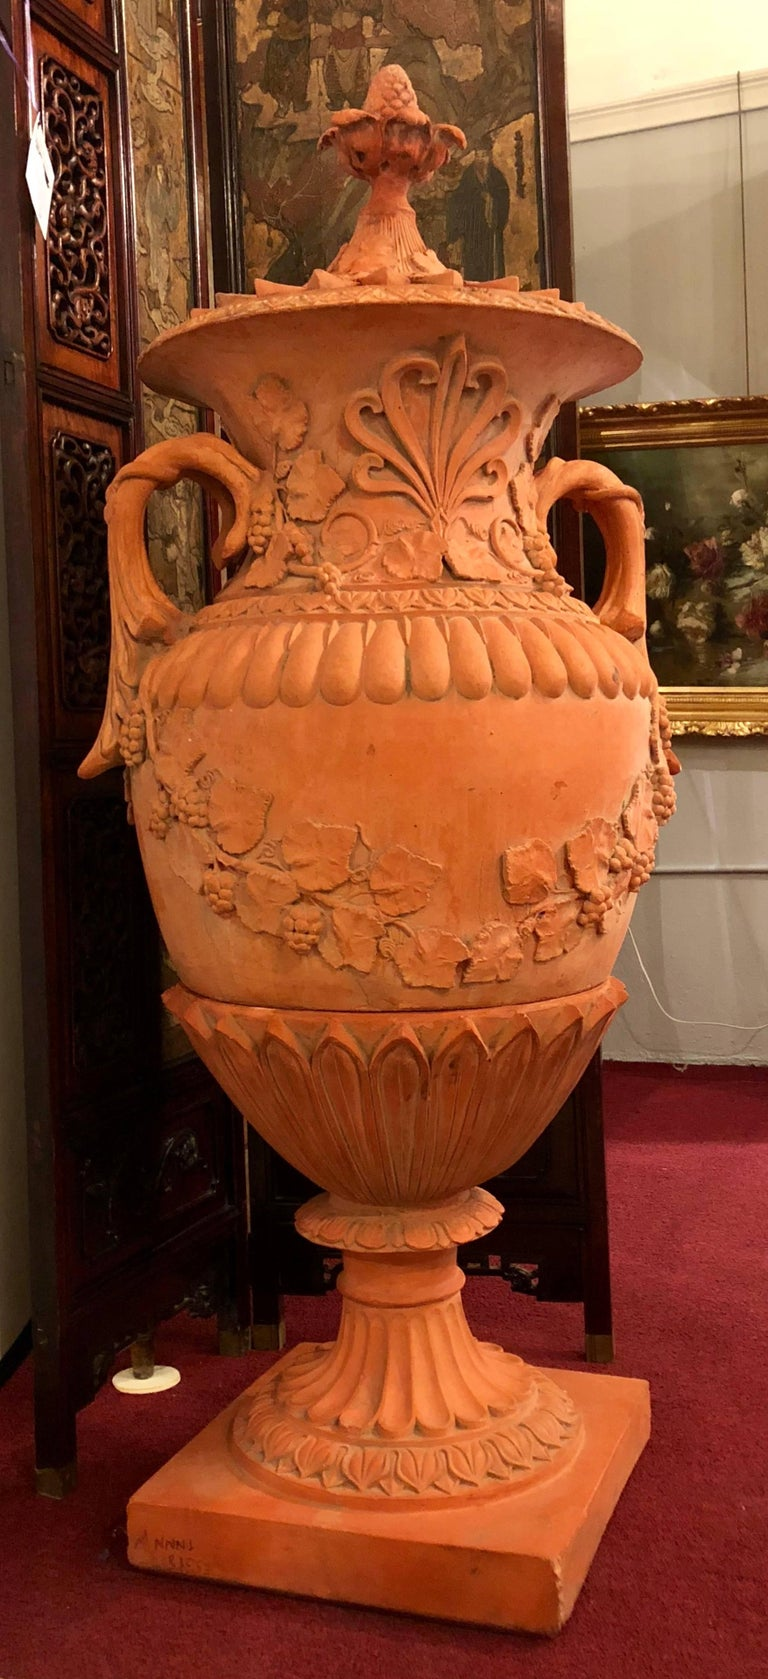 Pair of monumental late 19th-early 20th century. Terracotta three-piece lidded urns. These stunning garden urns can be used inside or outside the home in a garden. No matter where they stand they are certain to bring elegance and spark conversation.